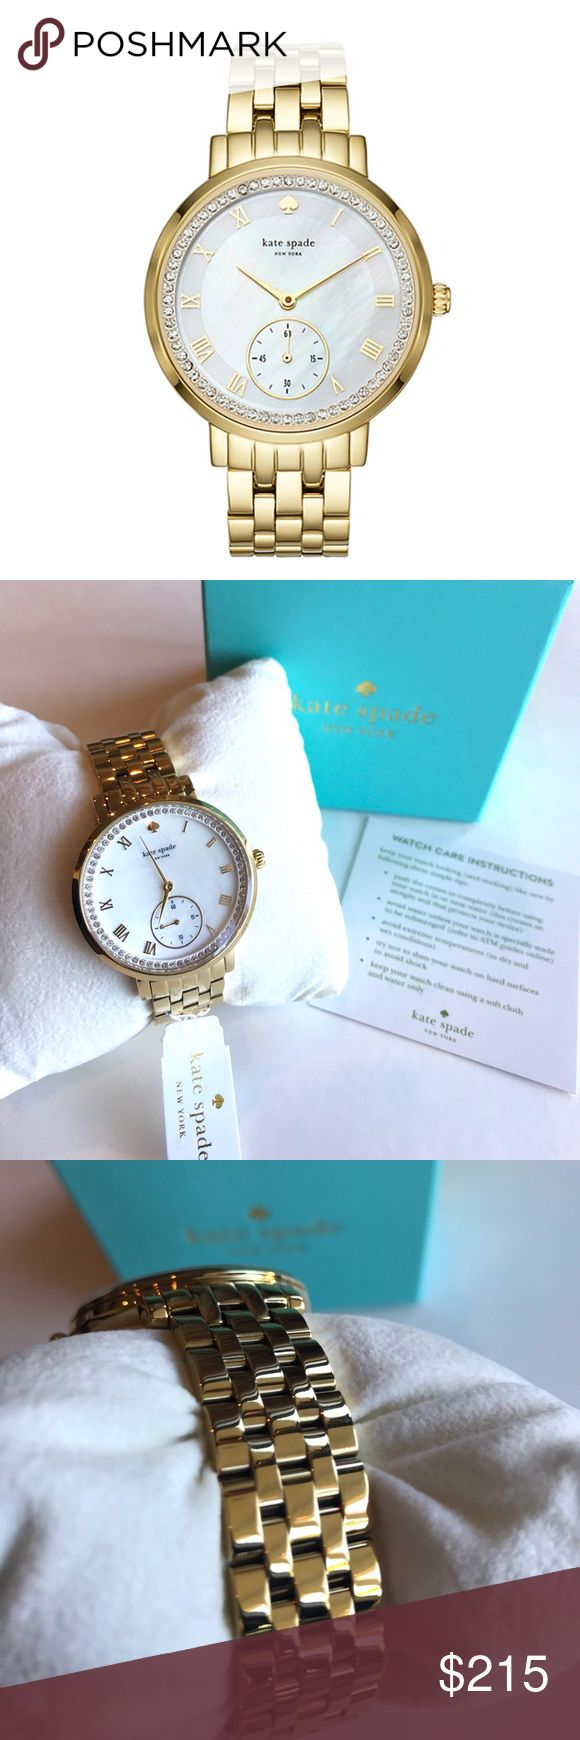 """KATE SPADE Monterey Pavé Gold Watch Guaranteed Authentic! Brand New in Box! Kate Spade Monterey pavé gold watch. Stainless steel case and five-link bracelet. Deployment clasp closure. Two-hand analog display with quartz movement. White mother-of-pearl dial includes hour markers, and one sub-dial. Pavé crystal dial ring. Splash-resistant to 3 ATM/30 meters. Measurements: Case H: 38 mm; Case W: 38 mm; Case D: 9 mm; Band W: 9 mm; Band Circumference/Length: 8"""". Item will be videotaped prior to…"""